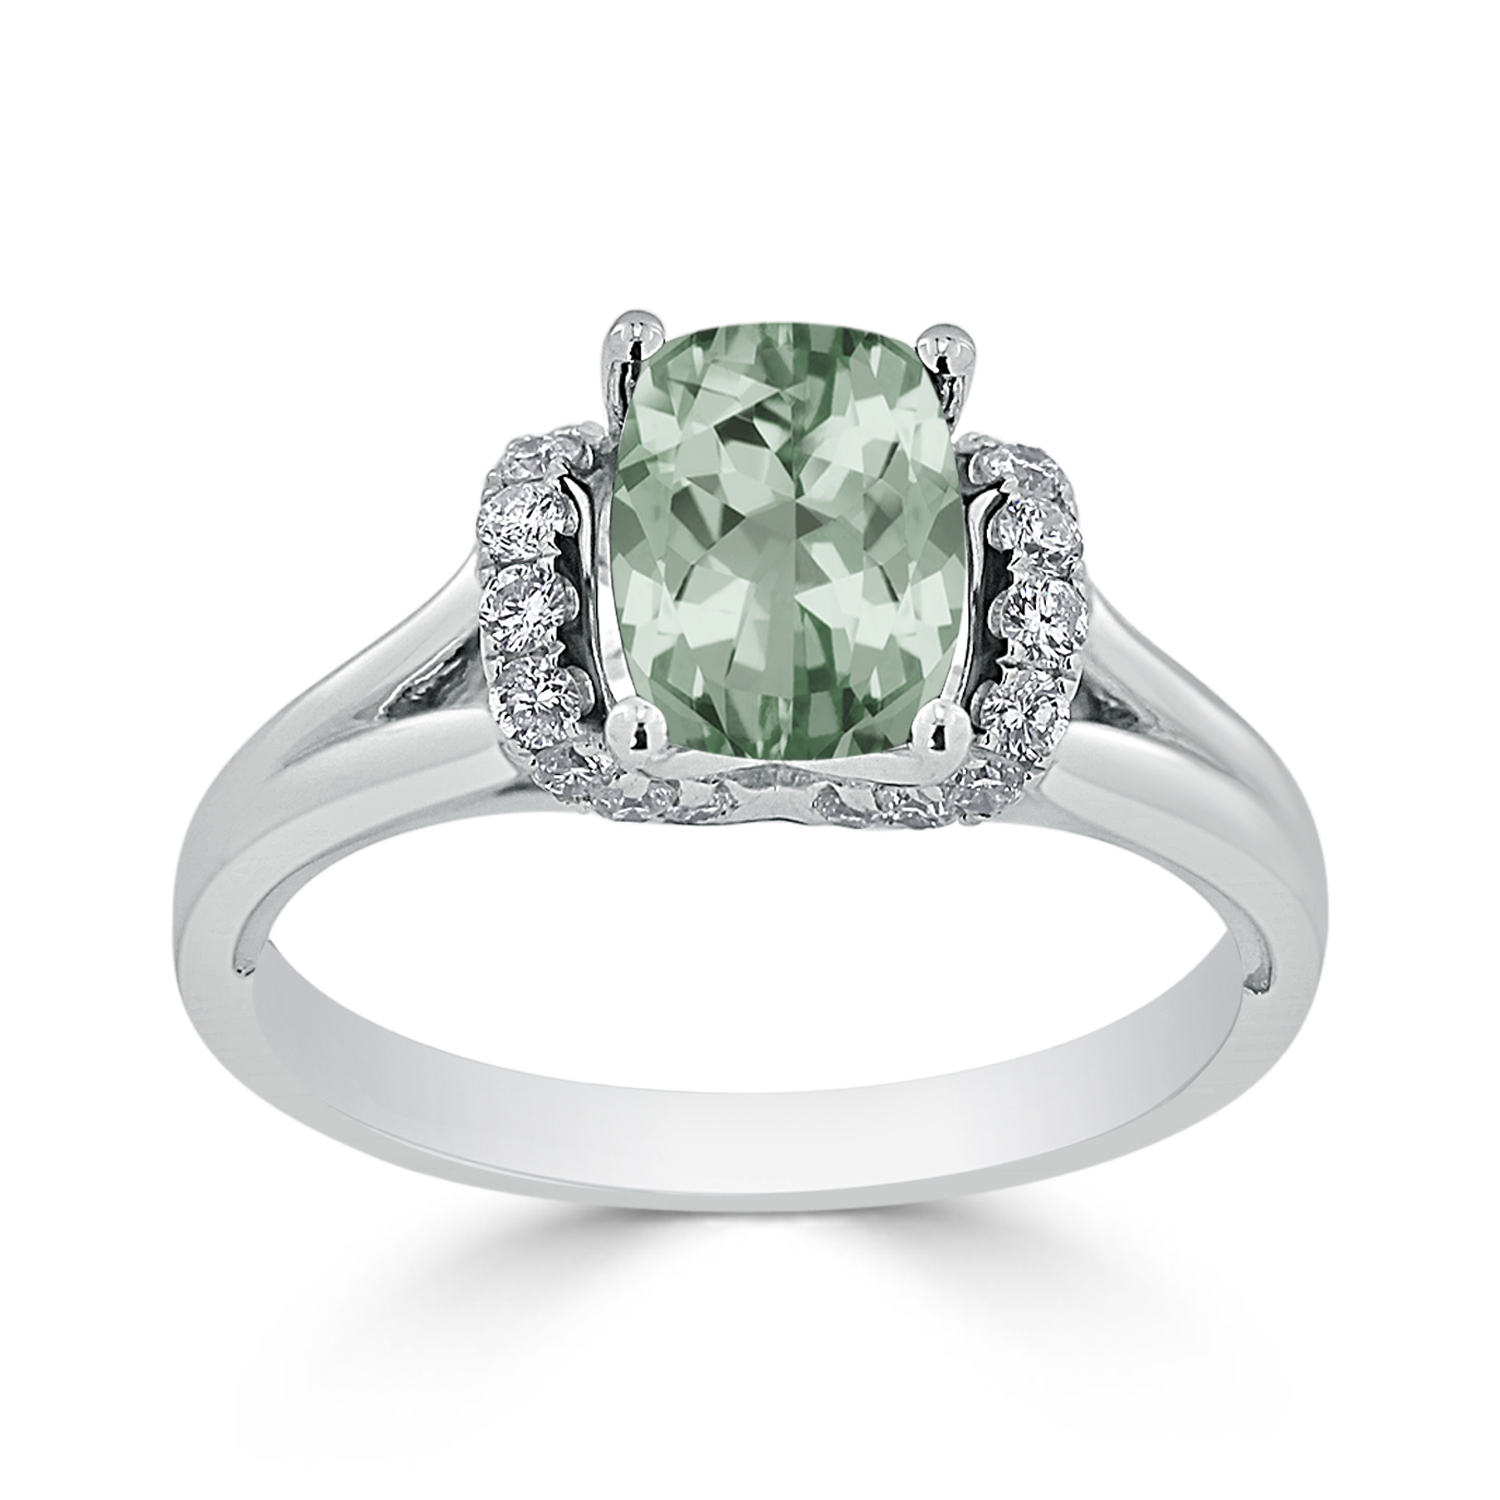 Halo Green Amethyst Diamond Ring in 14K White Gold with 1.20 carat Cushion Green Amethyst